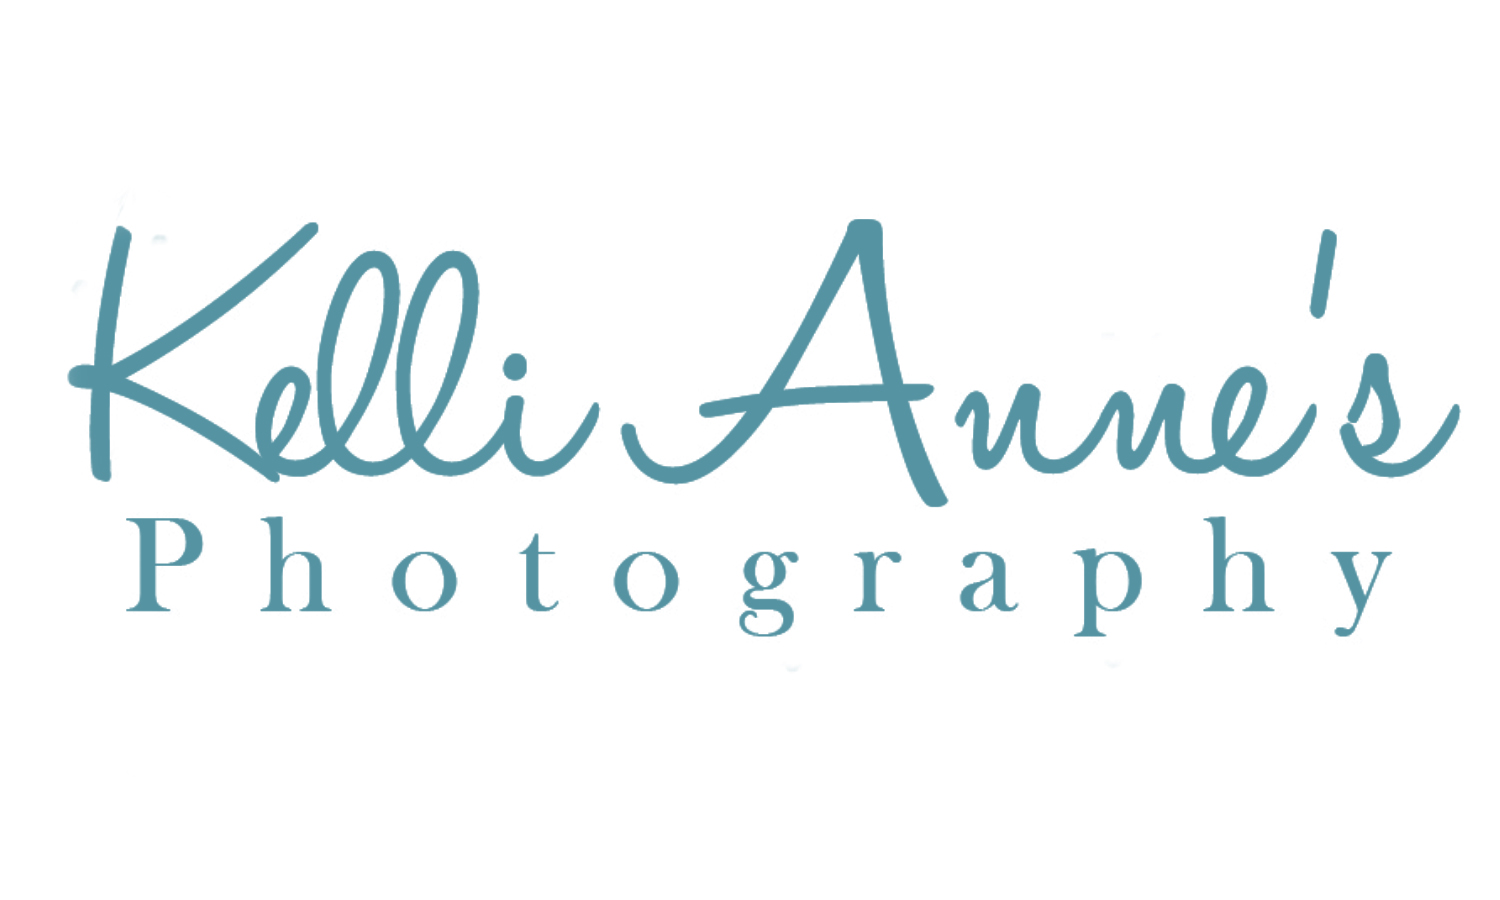 Kelli Anne's Photography